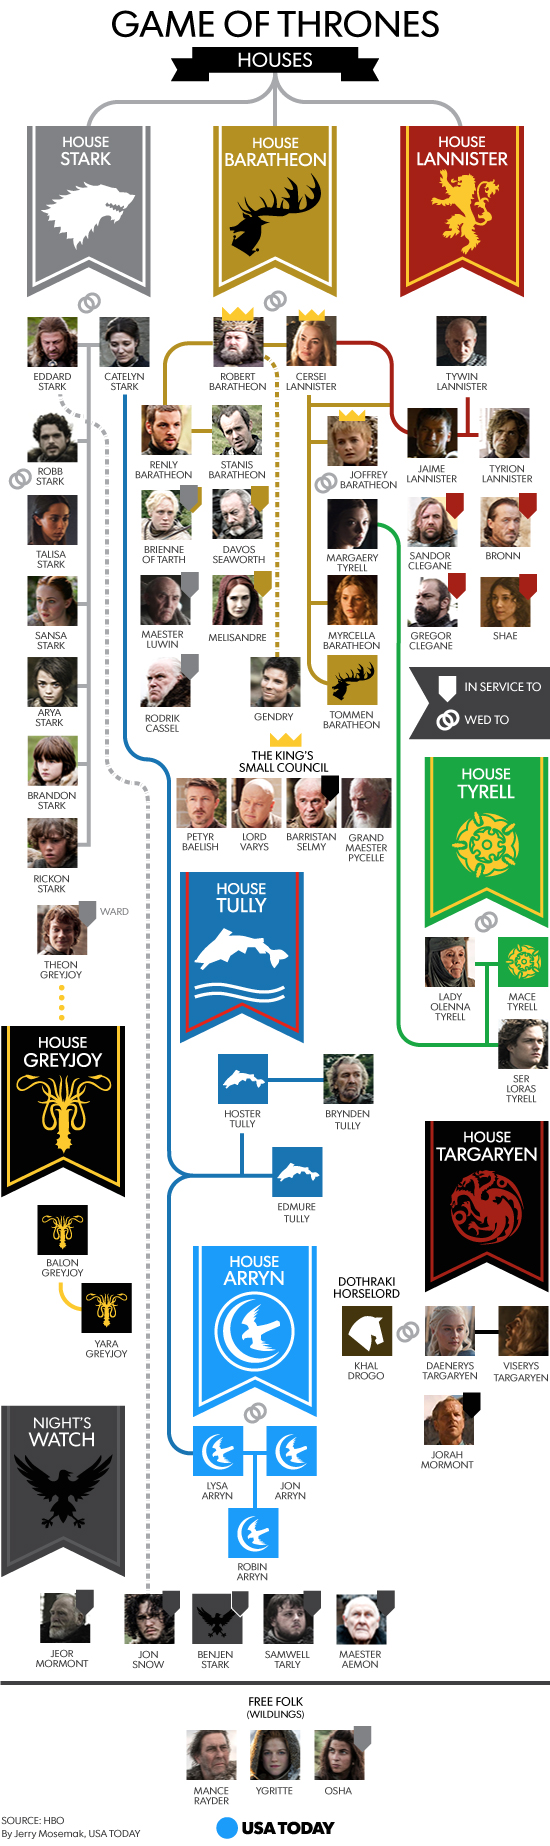 Game Of Thrones Season 3 Family Tree … | game of thrones christmas Game Of Thrones Family Tree on true detective family tree, sofia the first family tree, vikings family tree, a game of thrones: genesis, a game of thrones collectible card game, bates motel family tree, guardians of the galaxy family tree, a game of thrones, wizards of waverly place family tree, once upon a time family tree, a storm of swords, modern family family tree, a clash of kings, the amazing world of gumball family tree, wolfblood family tree, dexter family tree, orphan black family tree, sopranos family tree, themes in a song of ice and fire, a feast for crows, tyrion lannister family tree, a song of ice and fire, lost family tree, works based on a song of ice and fire, the simpsons family tree, that's so raven family tree, mom family tree, legends family tree, hemlock grove family tree,